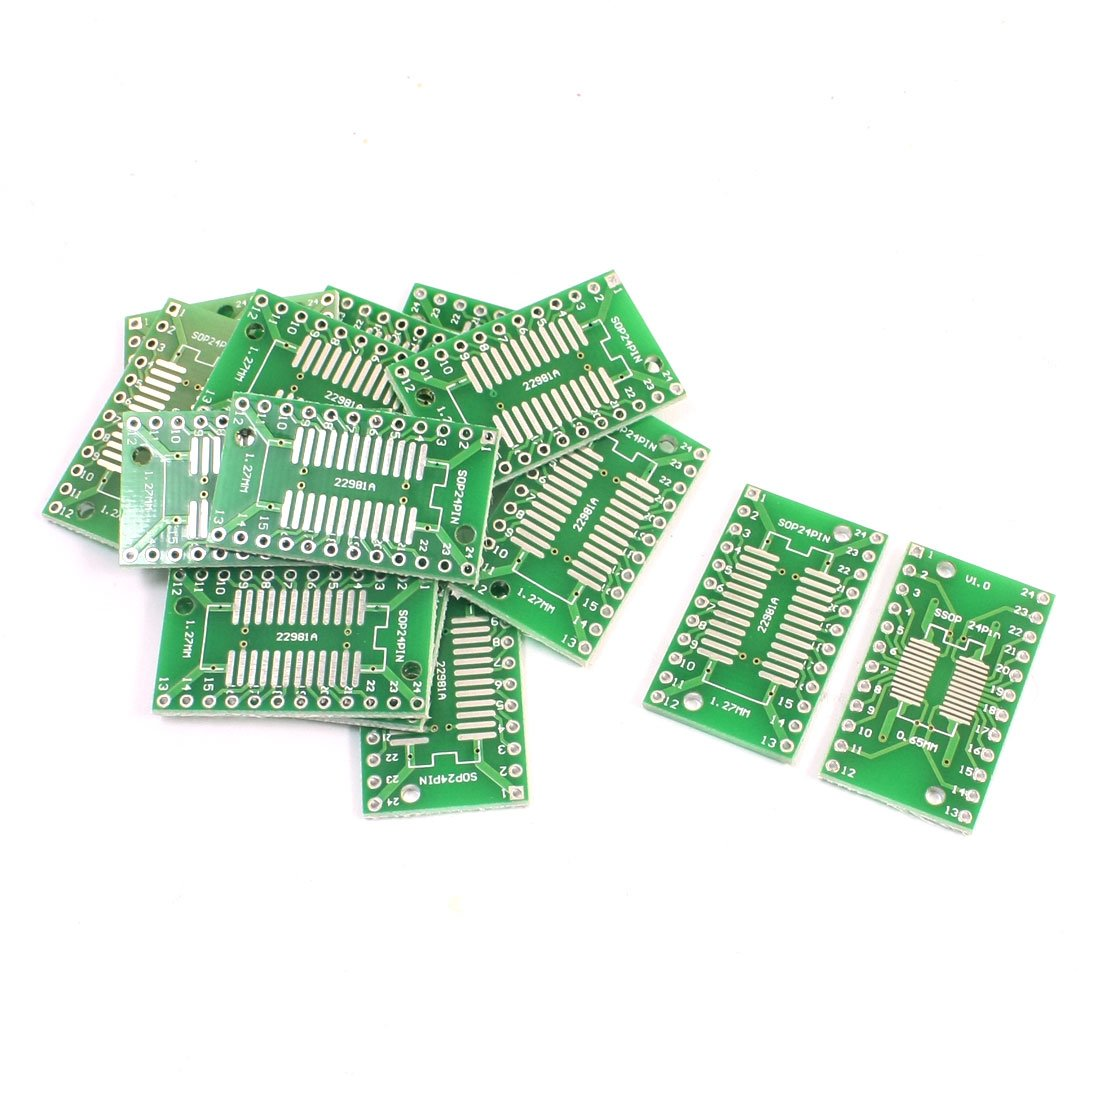 Uxcell a14062100ux0248 15 Piece SMD SOP24 SSOP24 TSSOP24 0.65 mm/1.27 mm to DIP 2.54 mm PCB Board Adapter